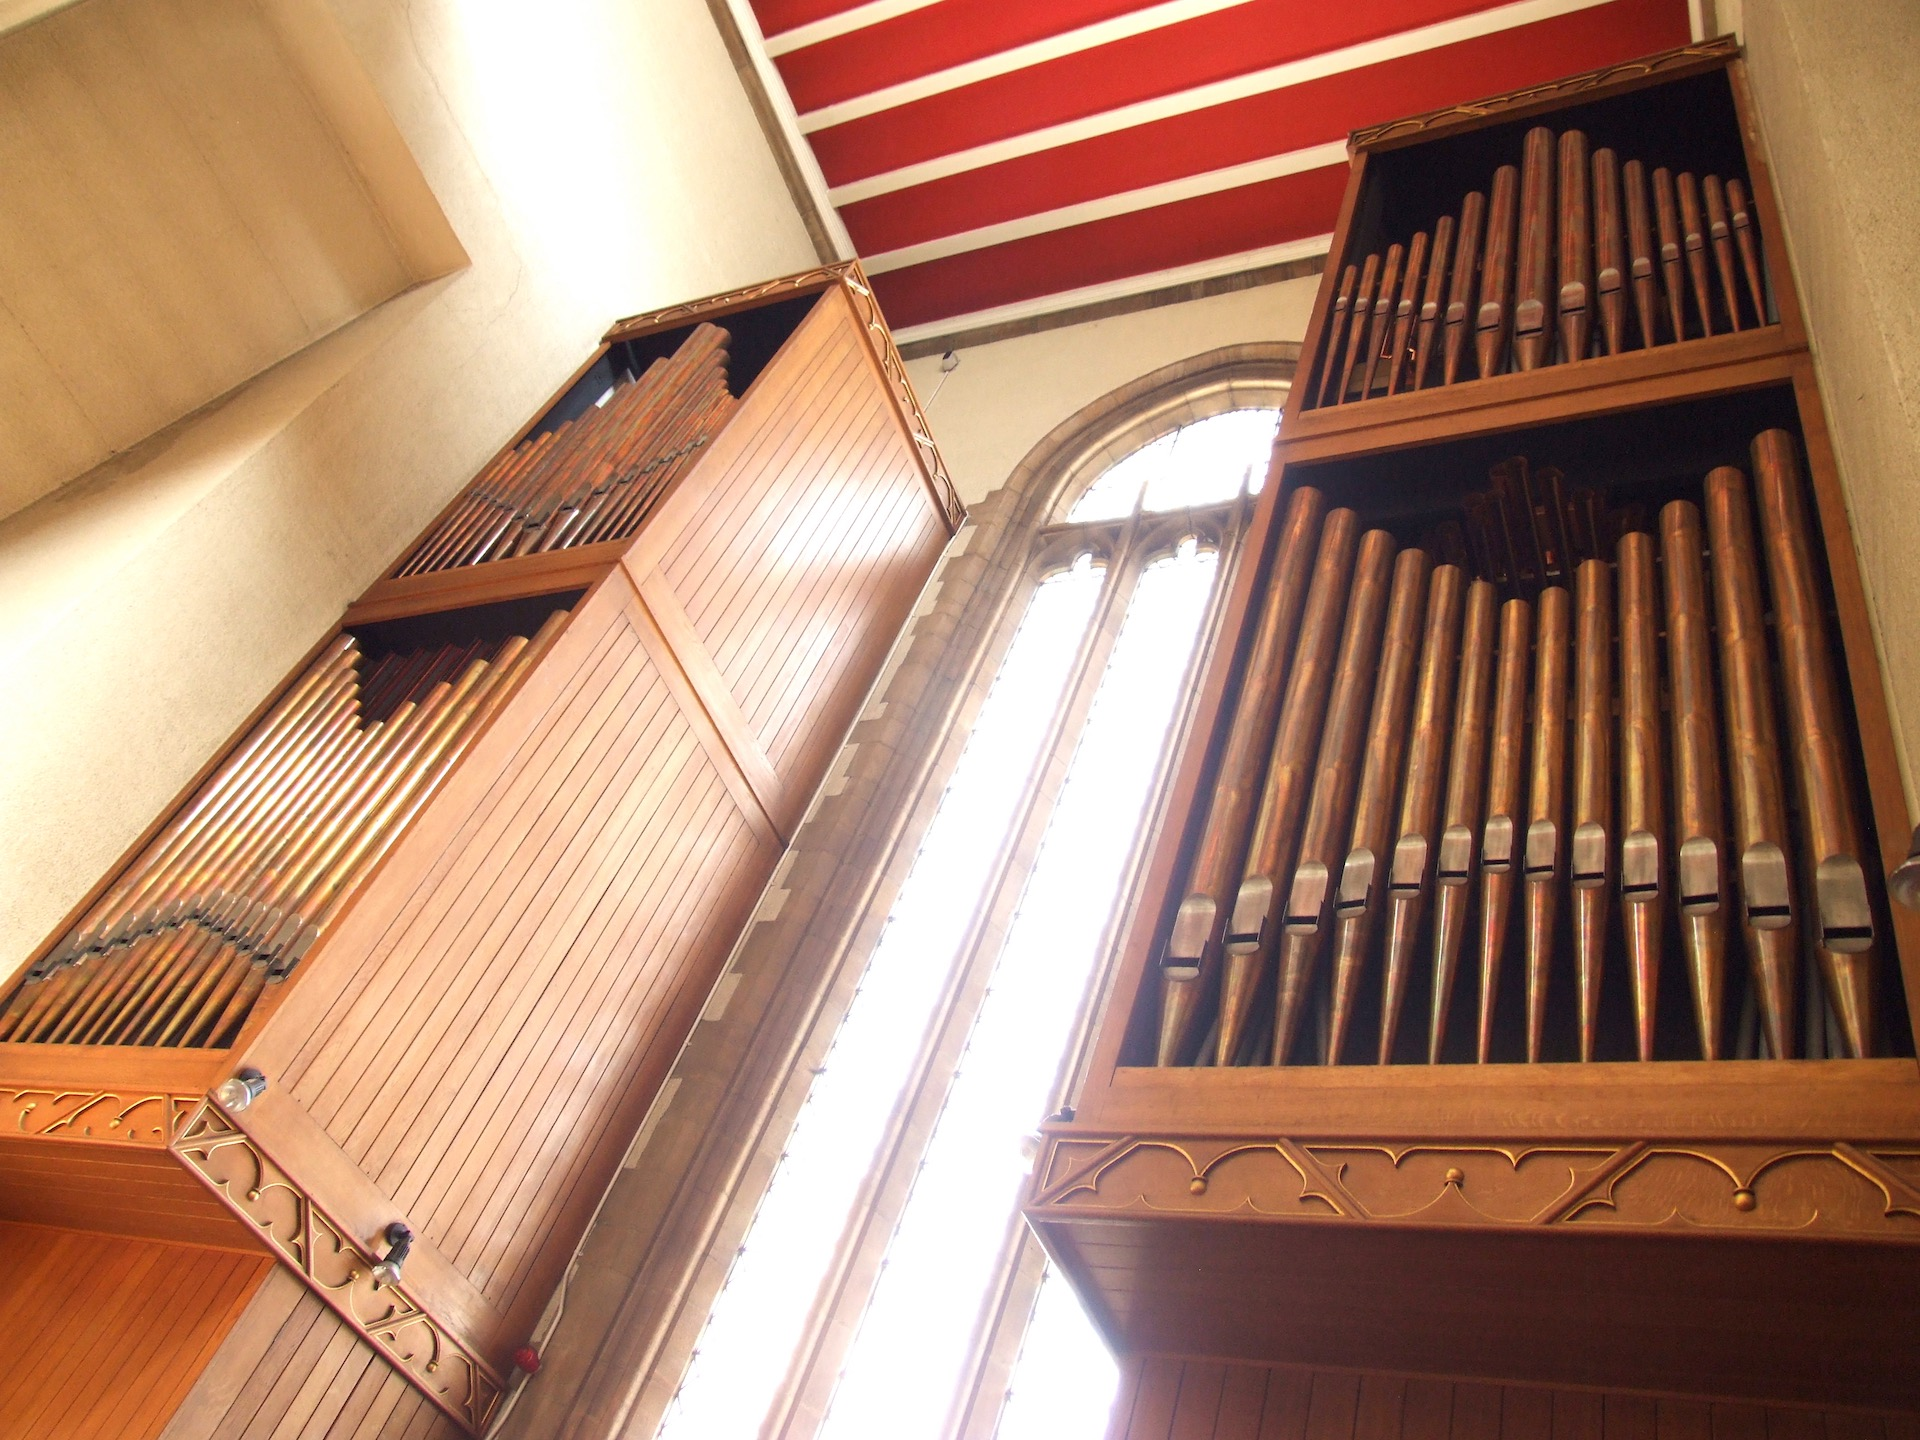 The organ cases - click to enlarge